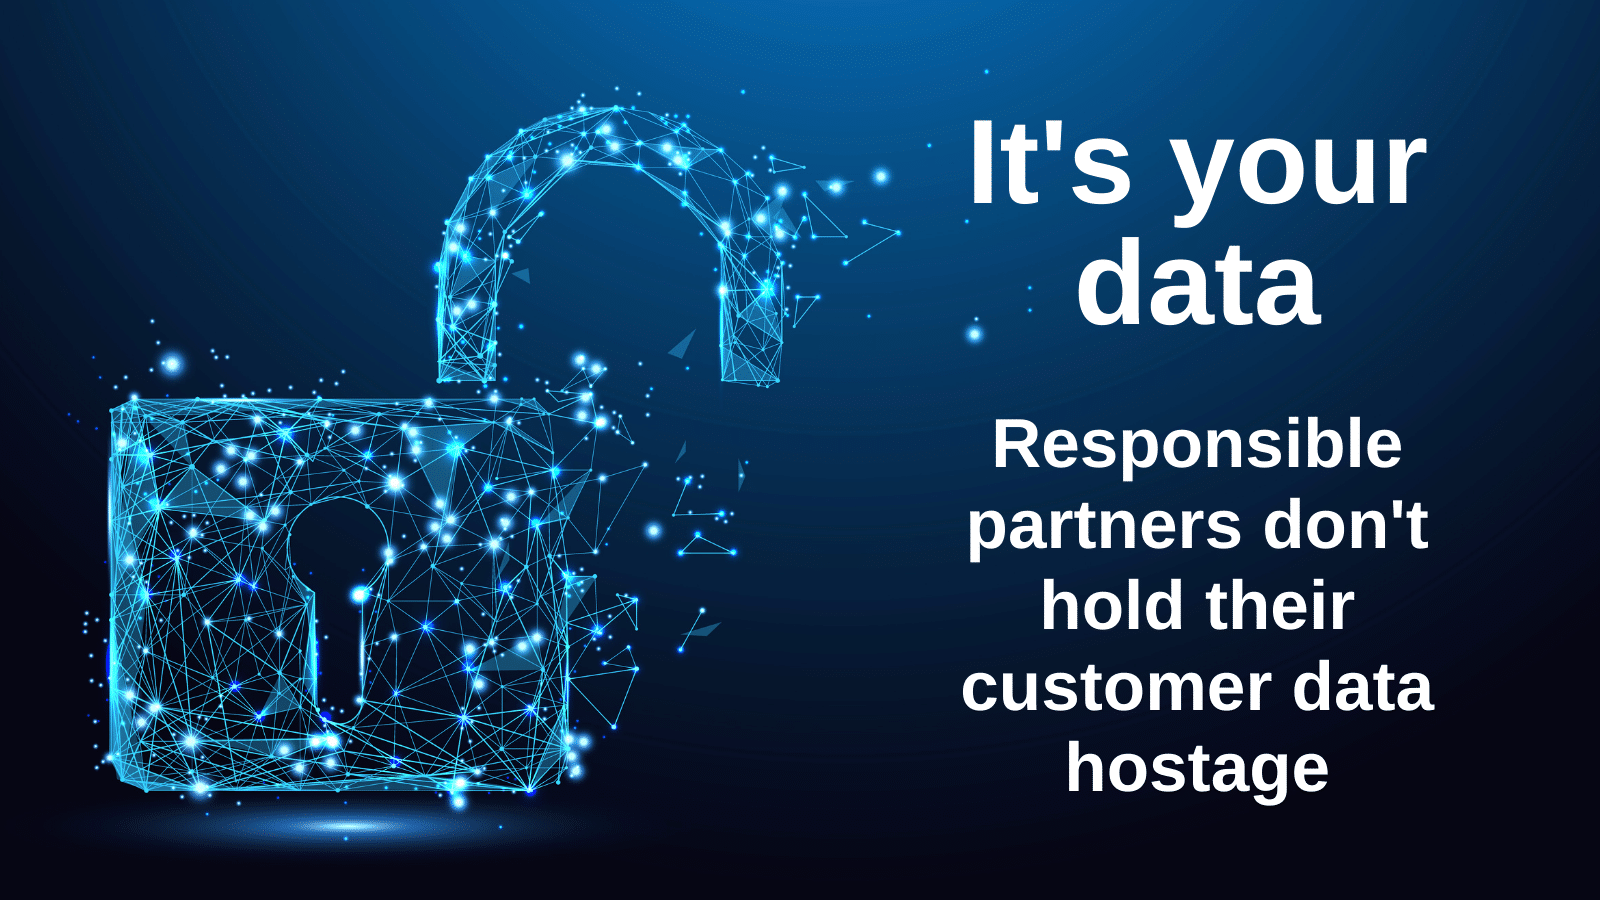 It's your data. Responsible partners don't hold their customers' ERP database hostage.